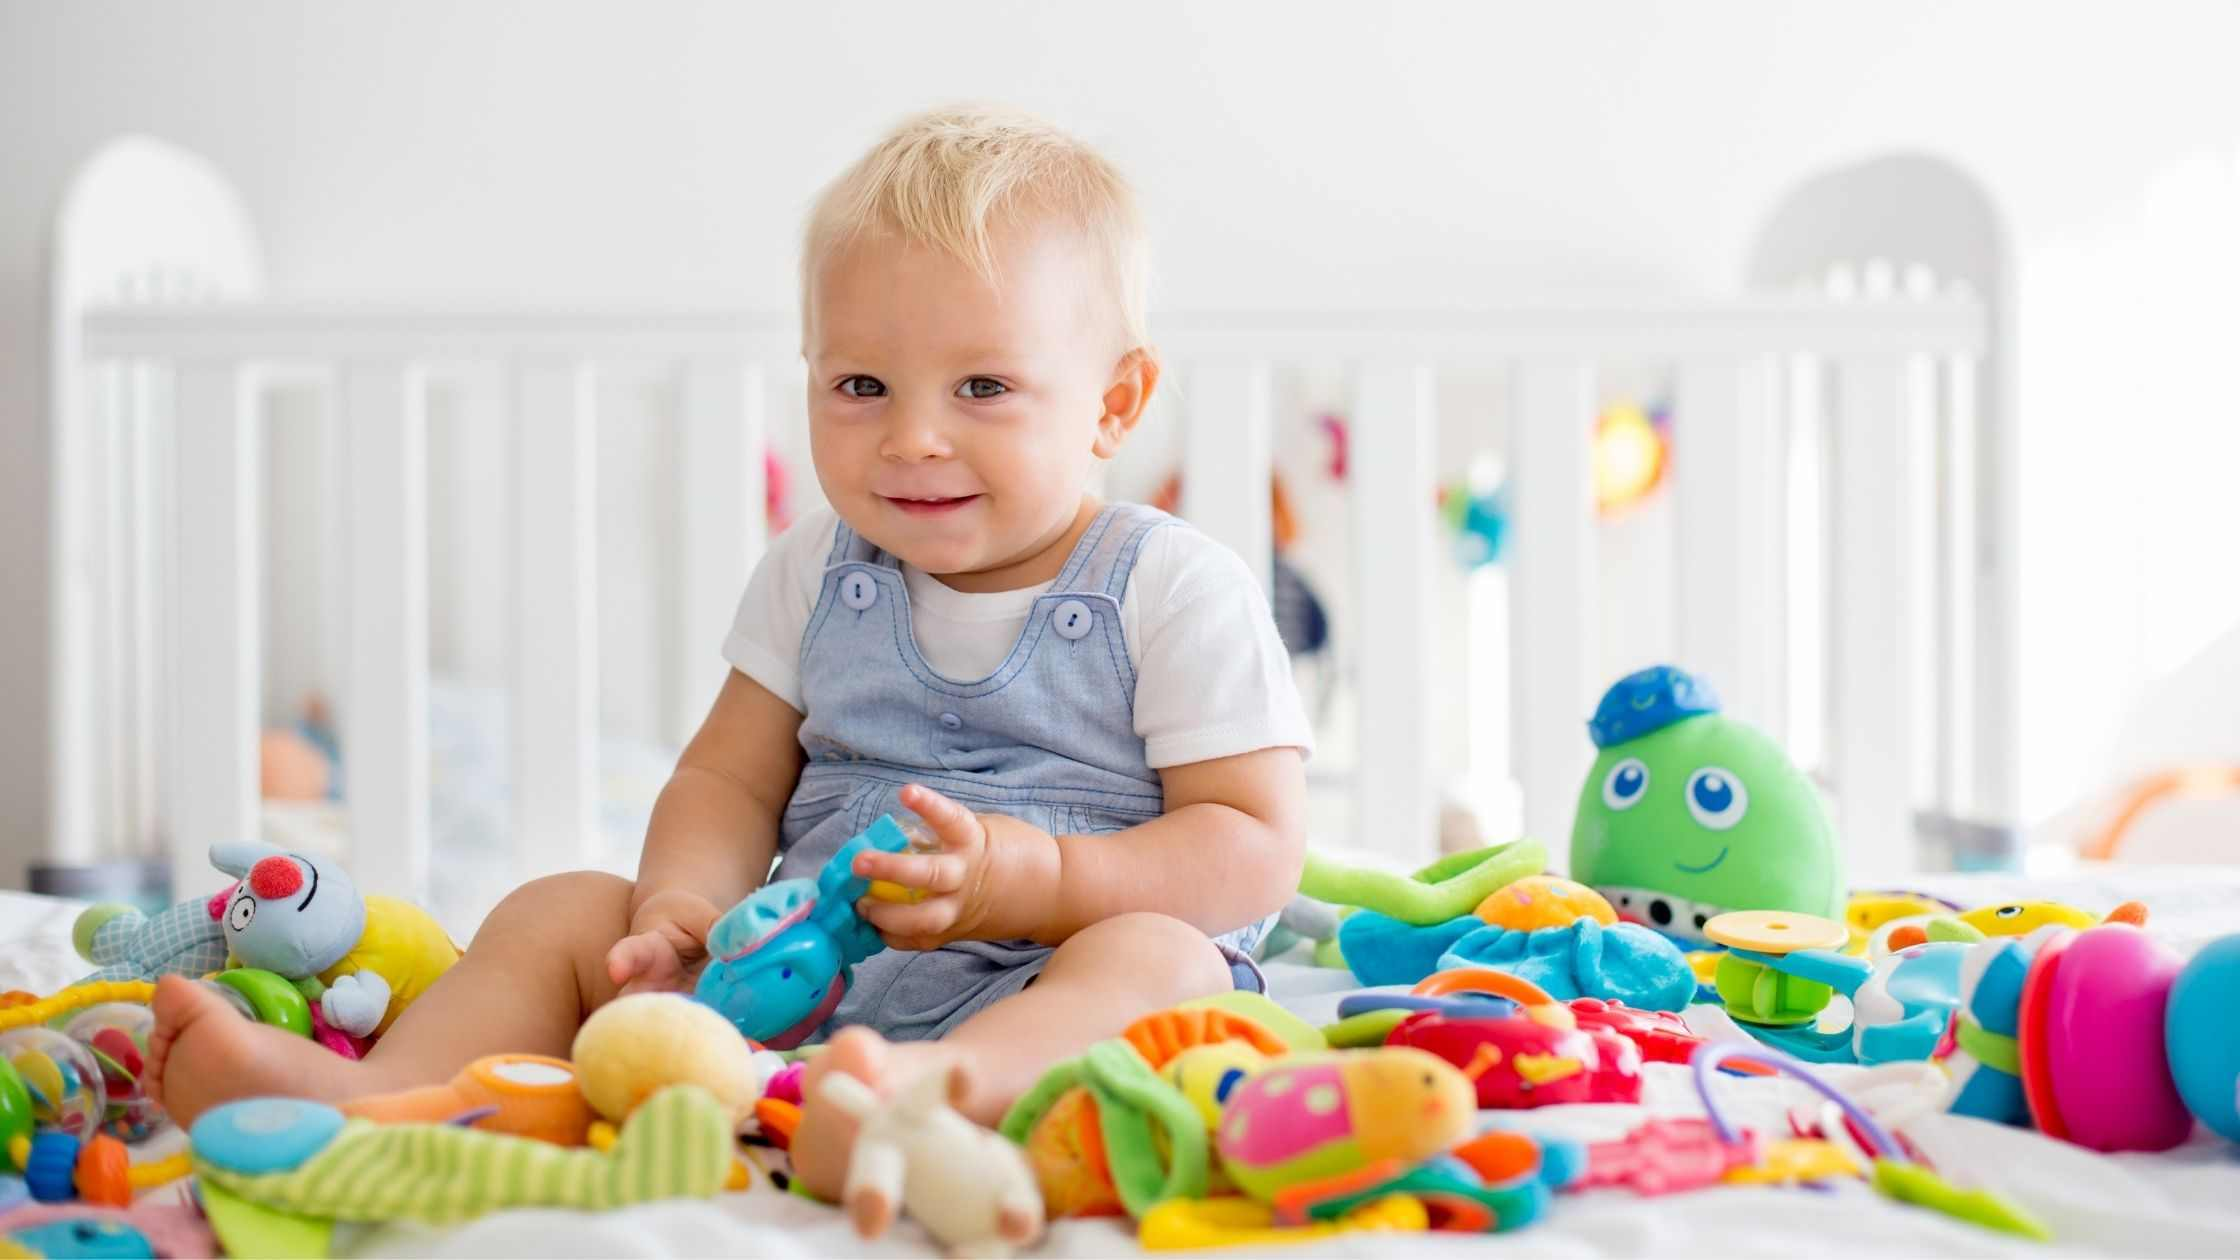 Baby Toy Bargains On The World Wide Web - SupermomGlobal